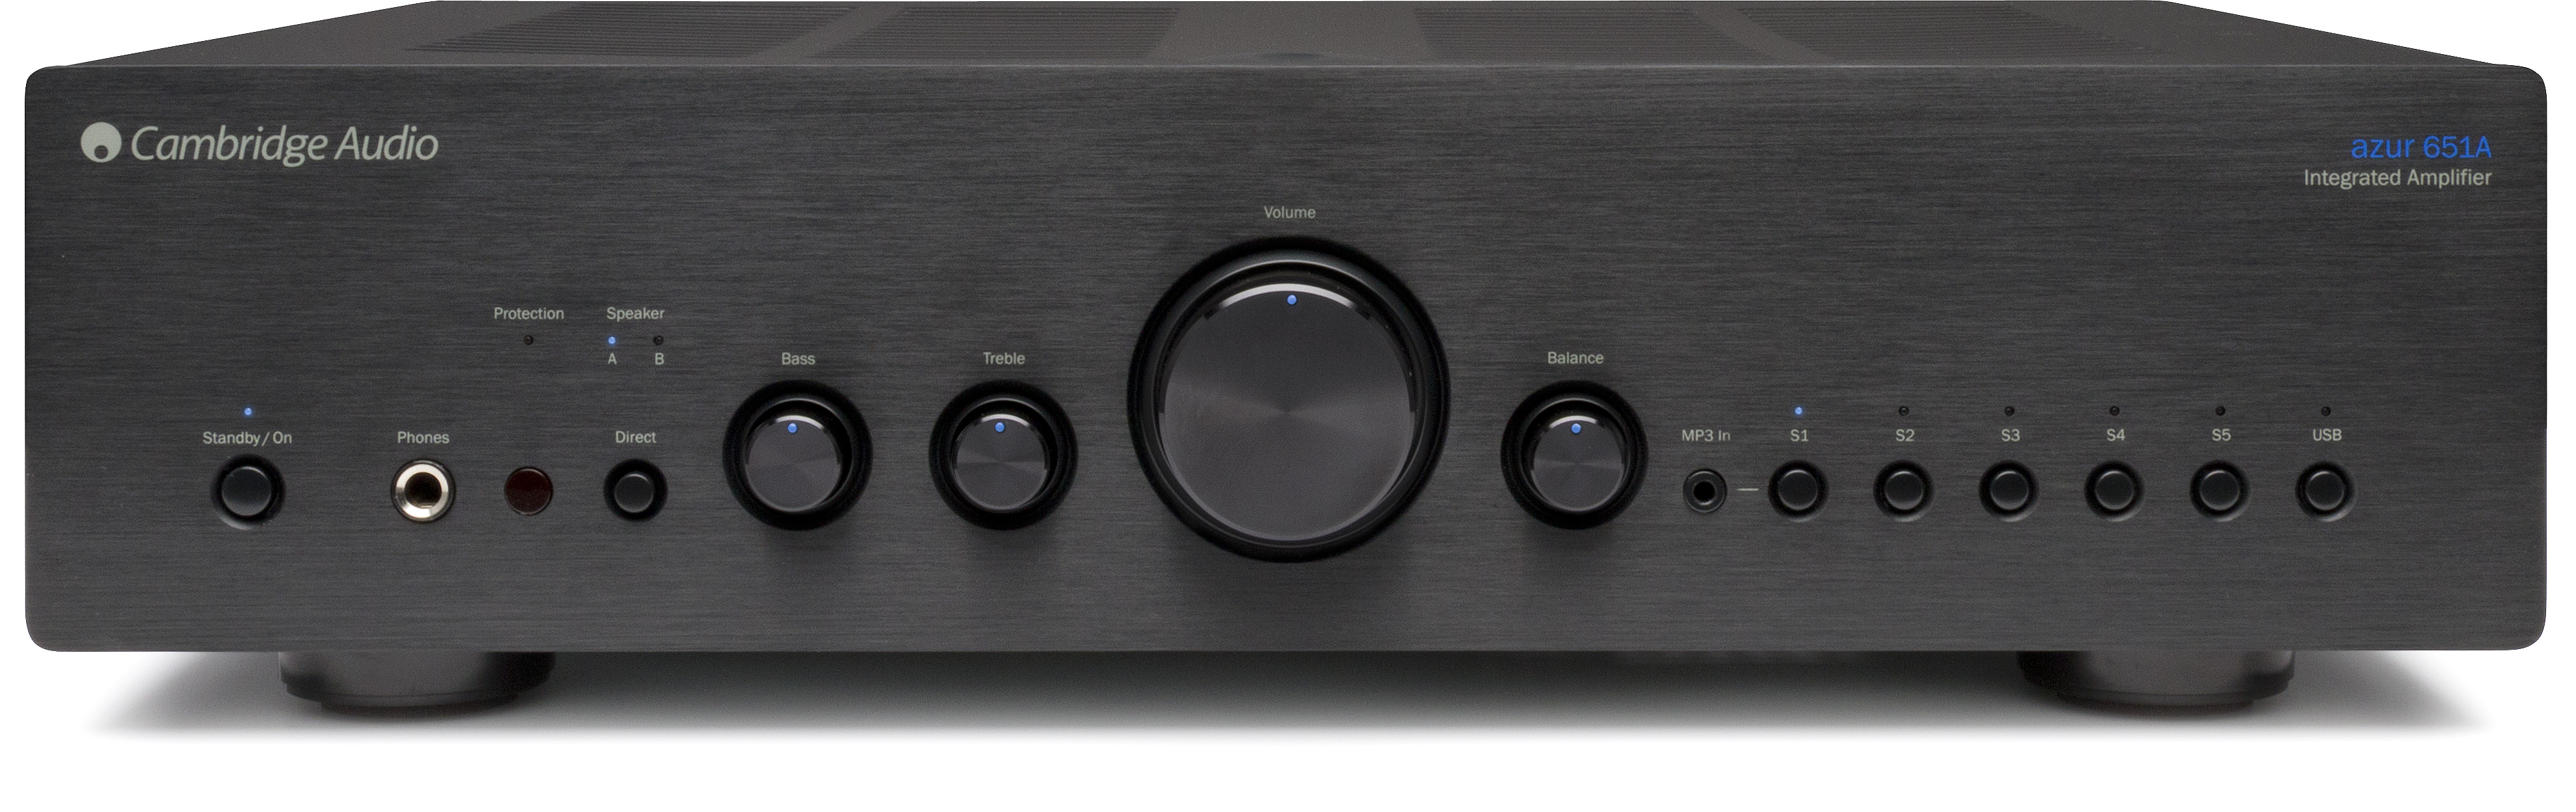 Azur 651A - Premium integrated amplifier Cambridge Audio